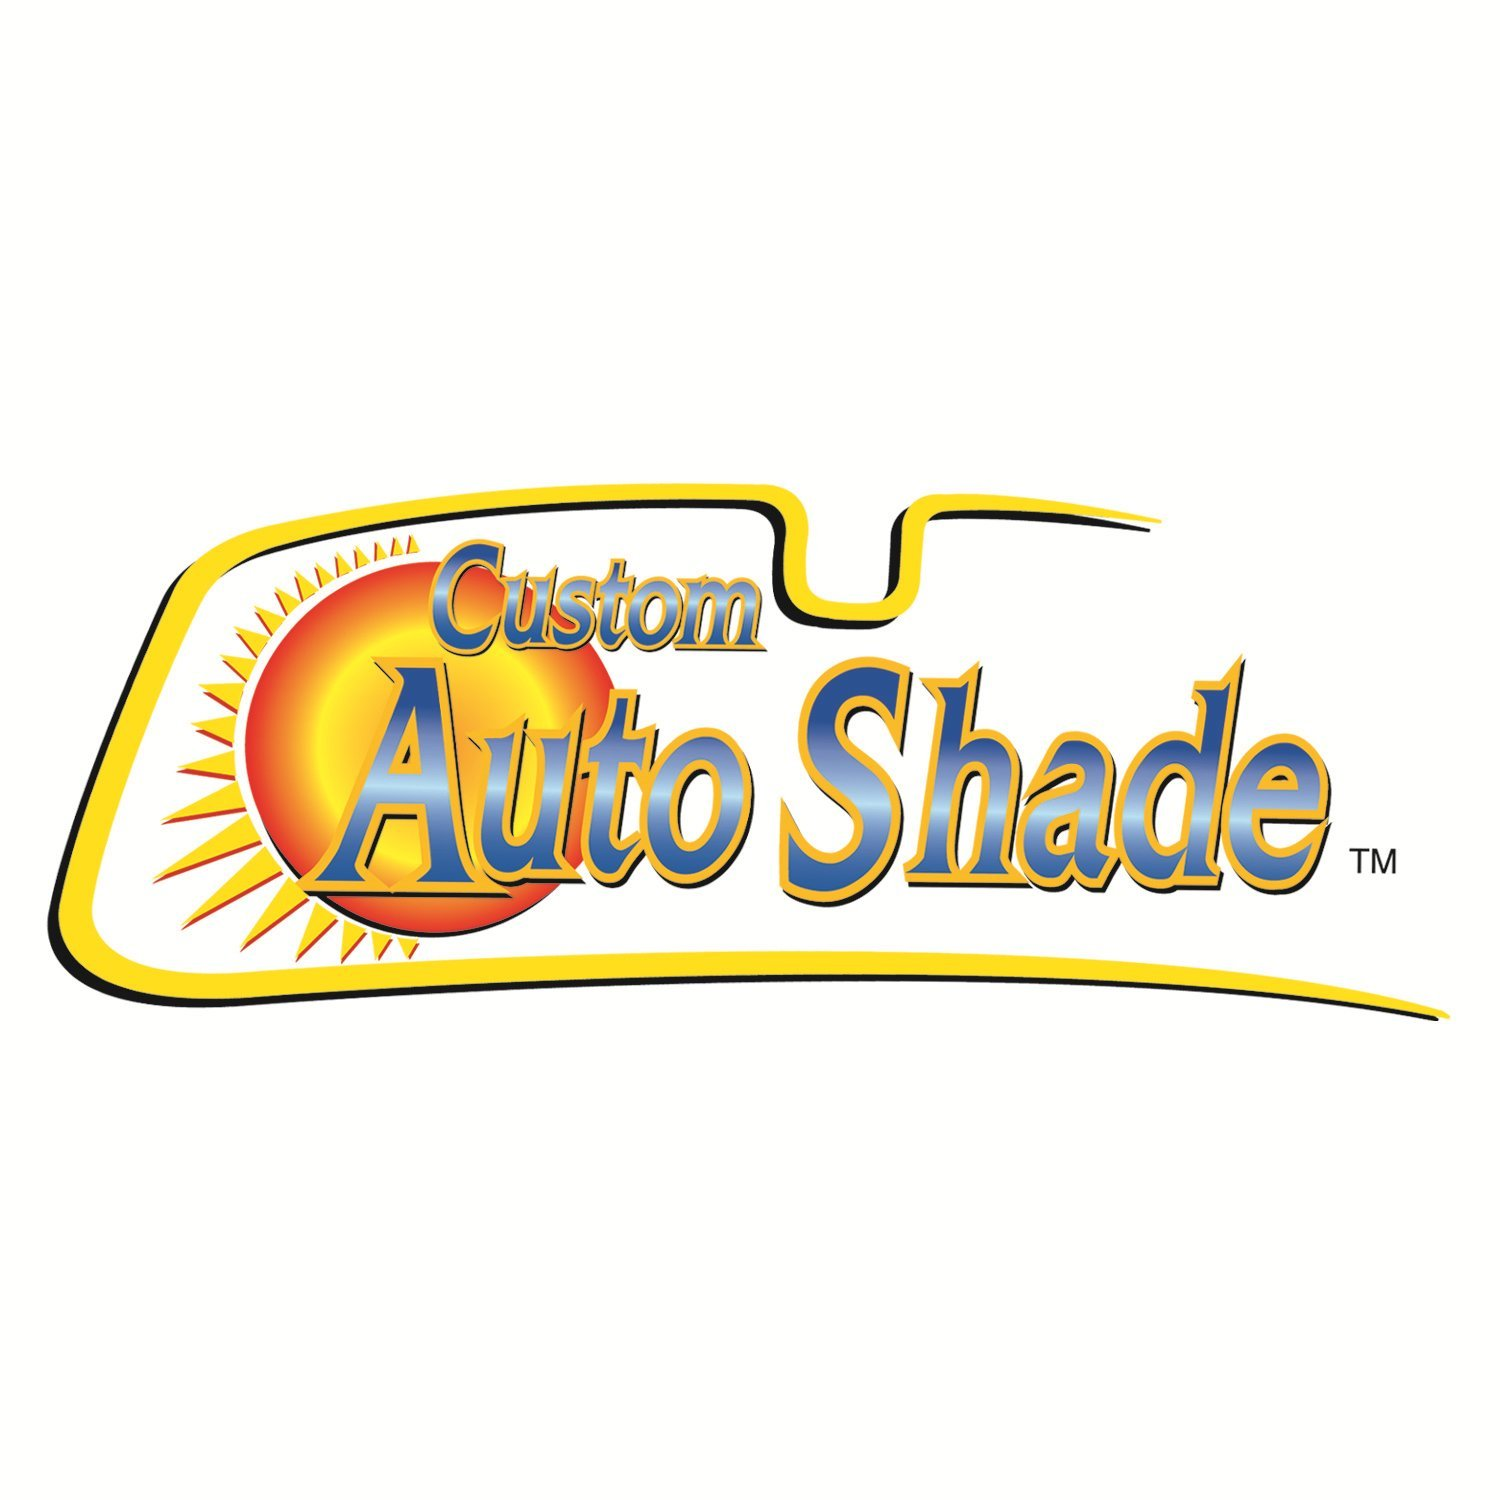 Intro-Tech Automotive VW-47Custom Auto Shade Sun Shade